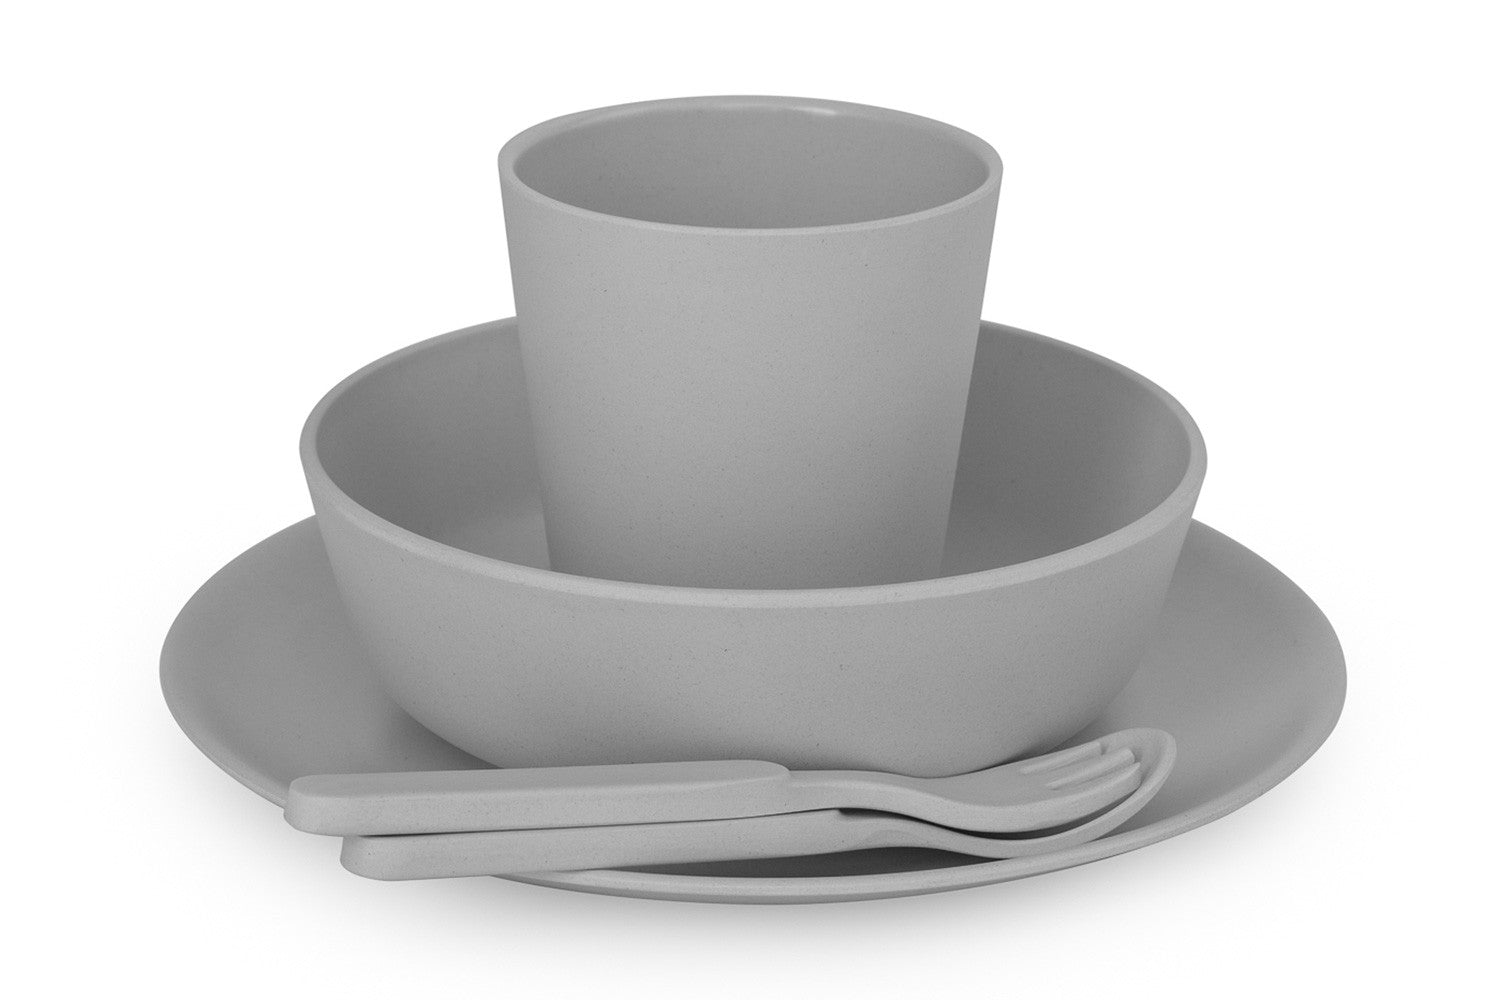 Maggie \u0026 Rose at Home Bamboo Dinnerware Set in ...  sc 1 st  Maggie \u0026 Rose at Home & Bamboo Dinnerware Set in Grey | Maggie \u0026 Rose at Home